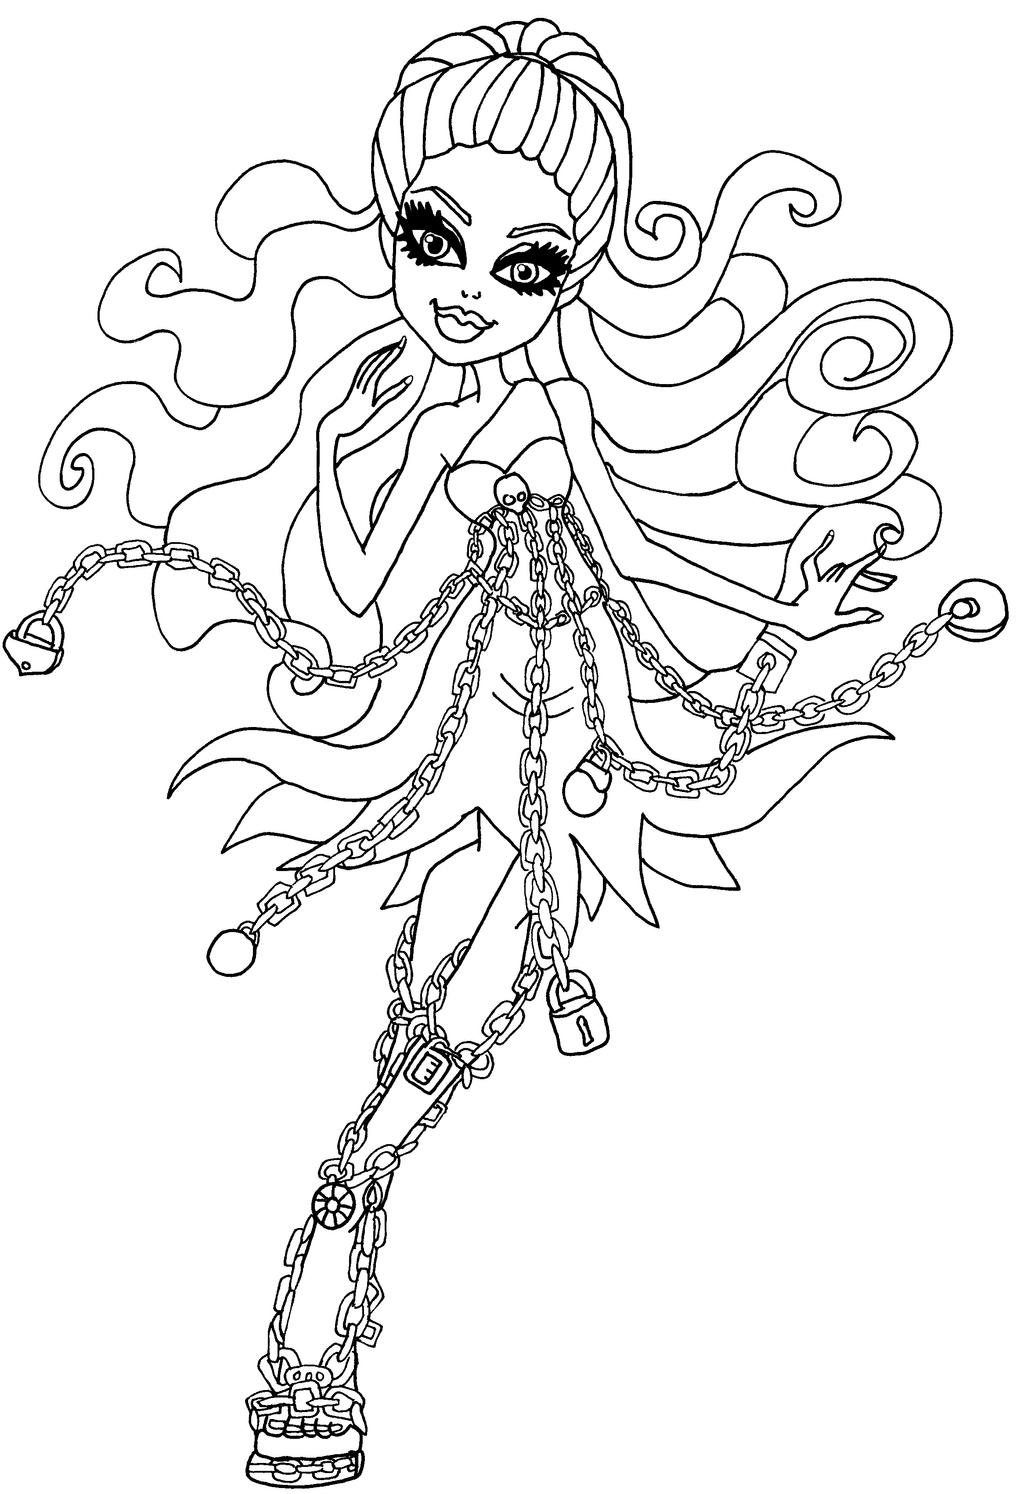 Monster High Ausmalbilder Catty Noir : Monster High Coloring Page Artwork By Elfkena On Deviantartcom